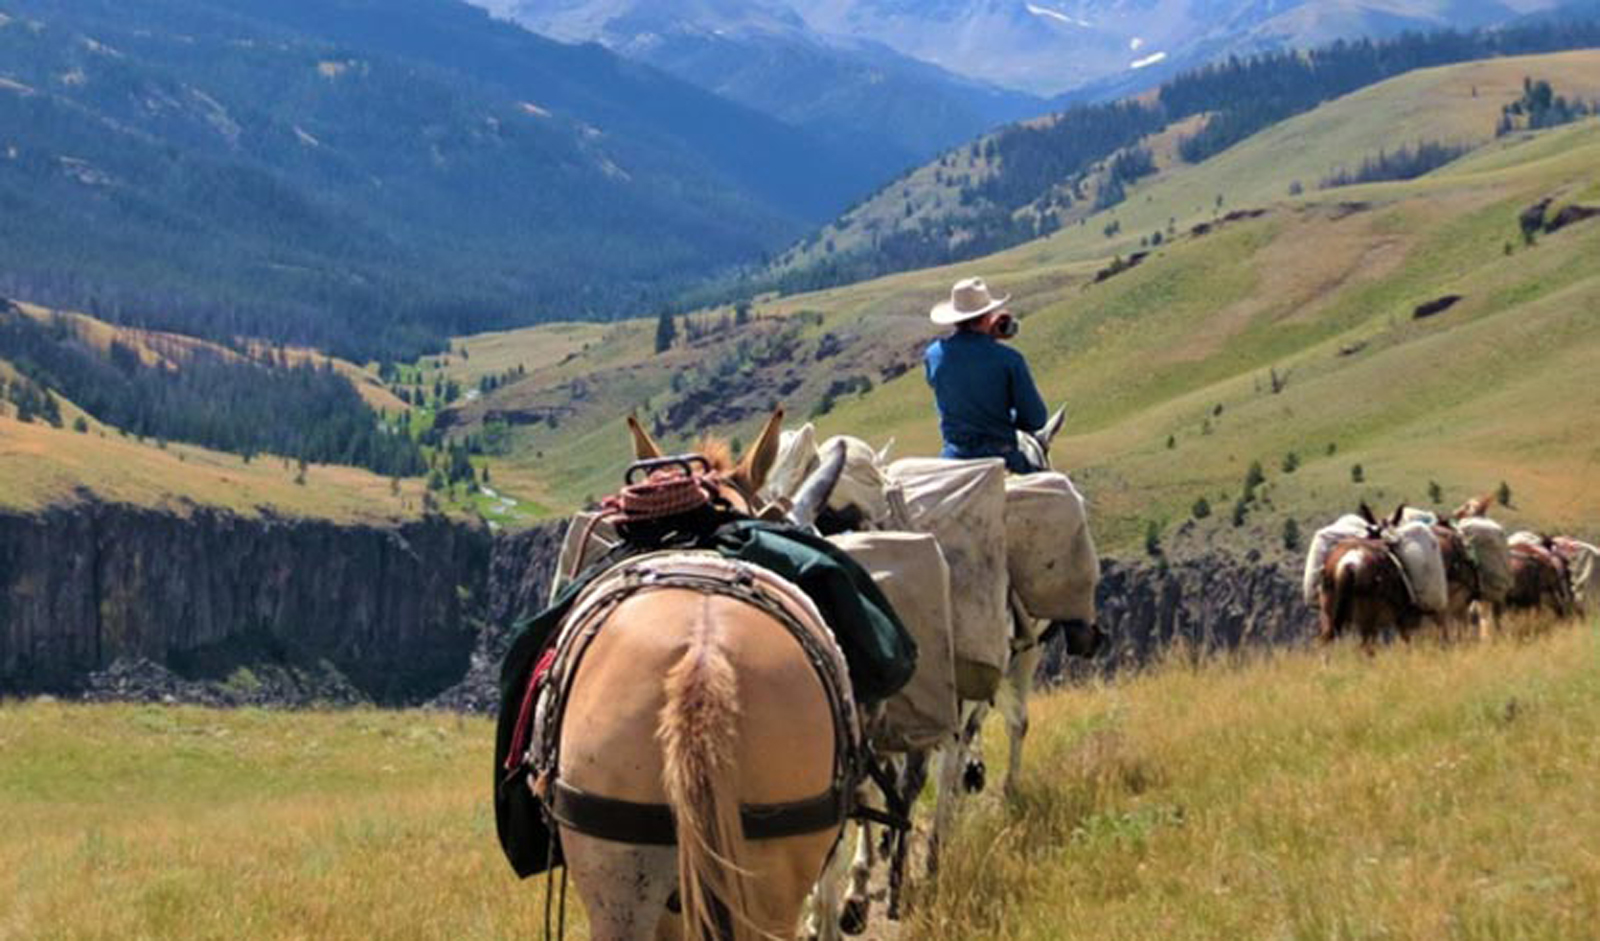 Bow Wyoming Outfitter And Guides Daily Trial Rides